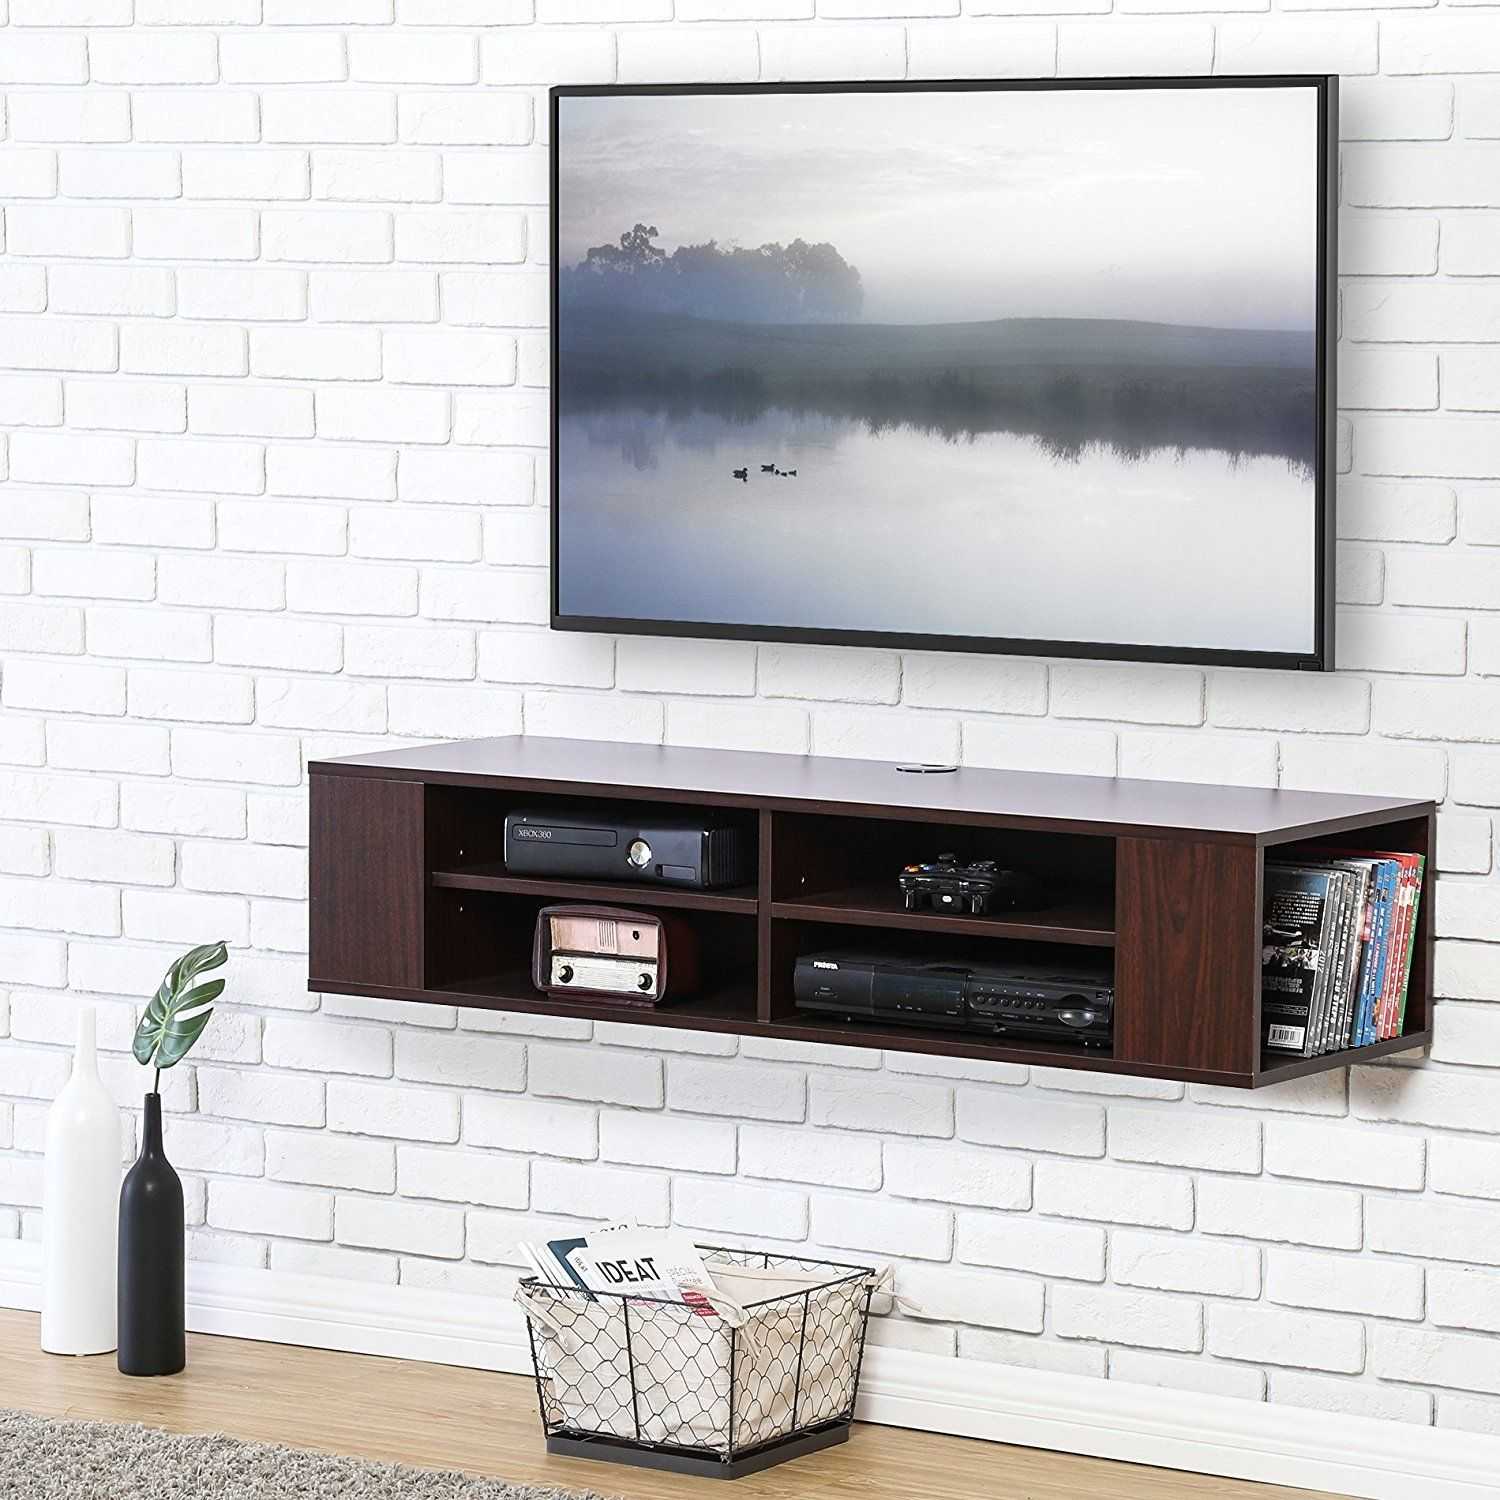 Fitueyes Wall Mounted Audio Video Console Wood Grain For Xbox One Ps4 Vizio Sumsung Sony Tv Ds212001wb Wall Mounted Media Console Wall Mount Tv Stand Floating Tv Stand